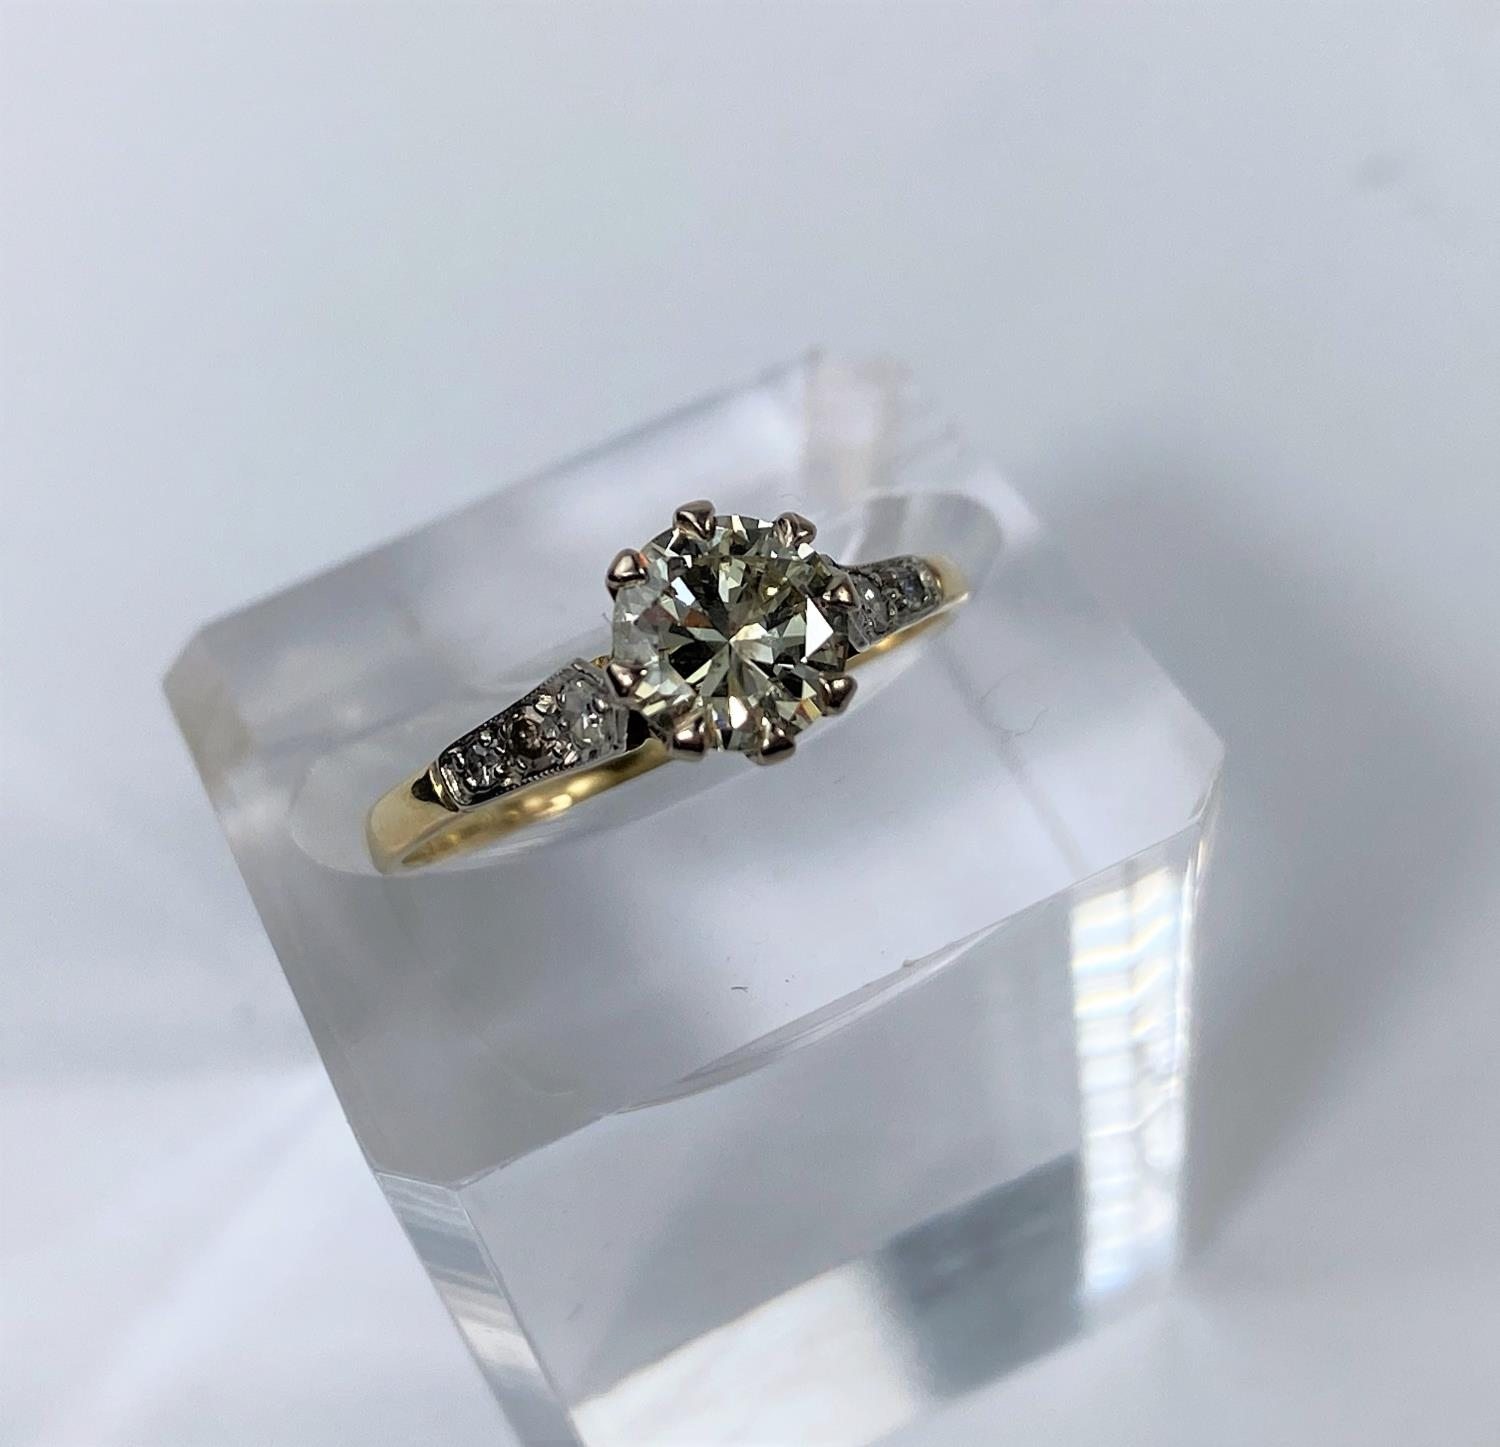 A yellow metal ring set diamond solitaire stone of 1.10 metric carat approx, each shoulder set 3